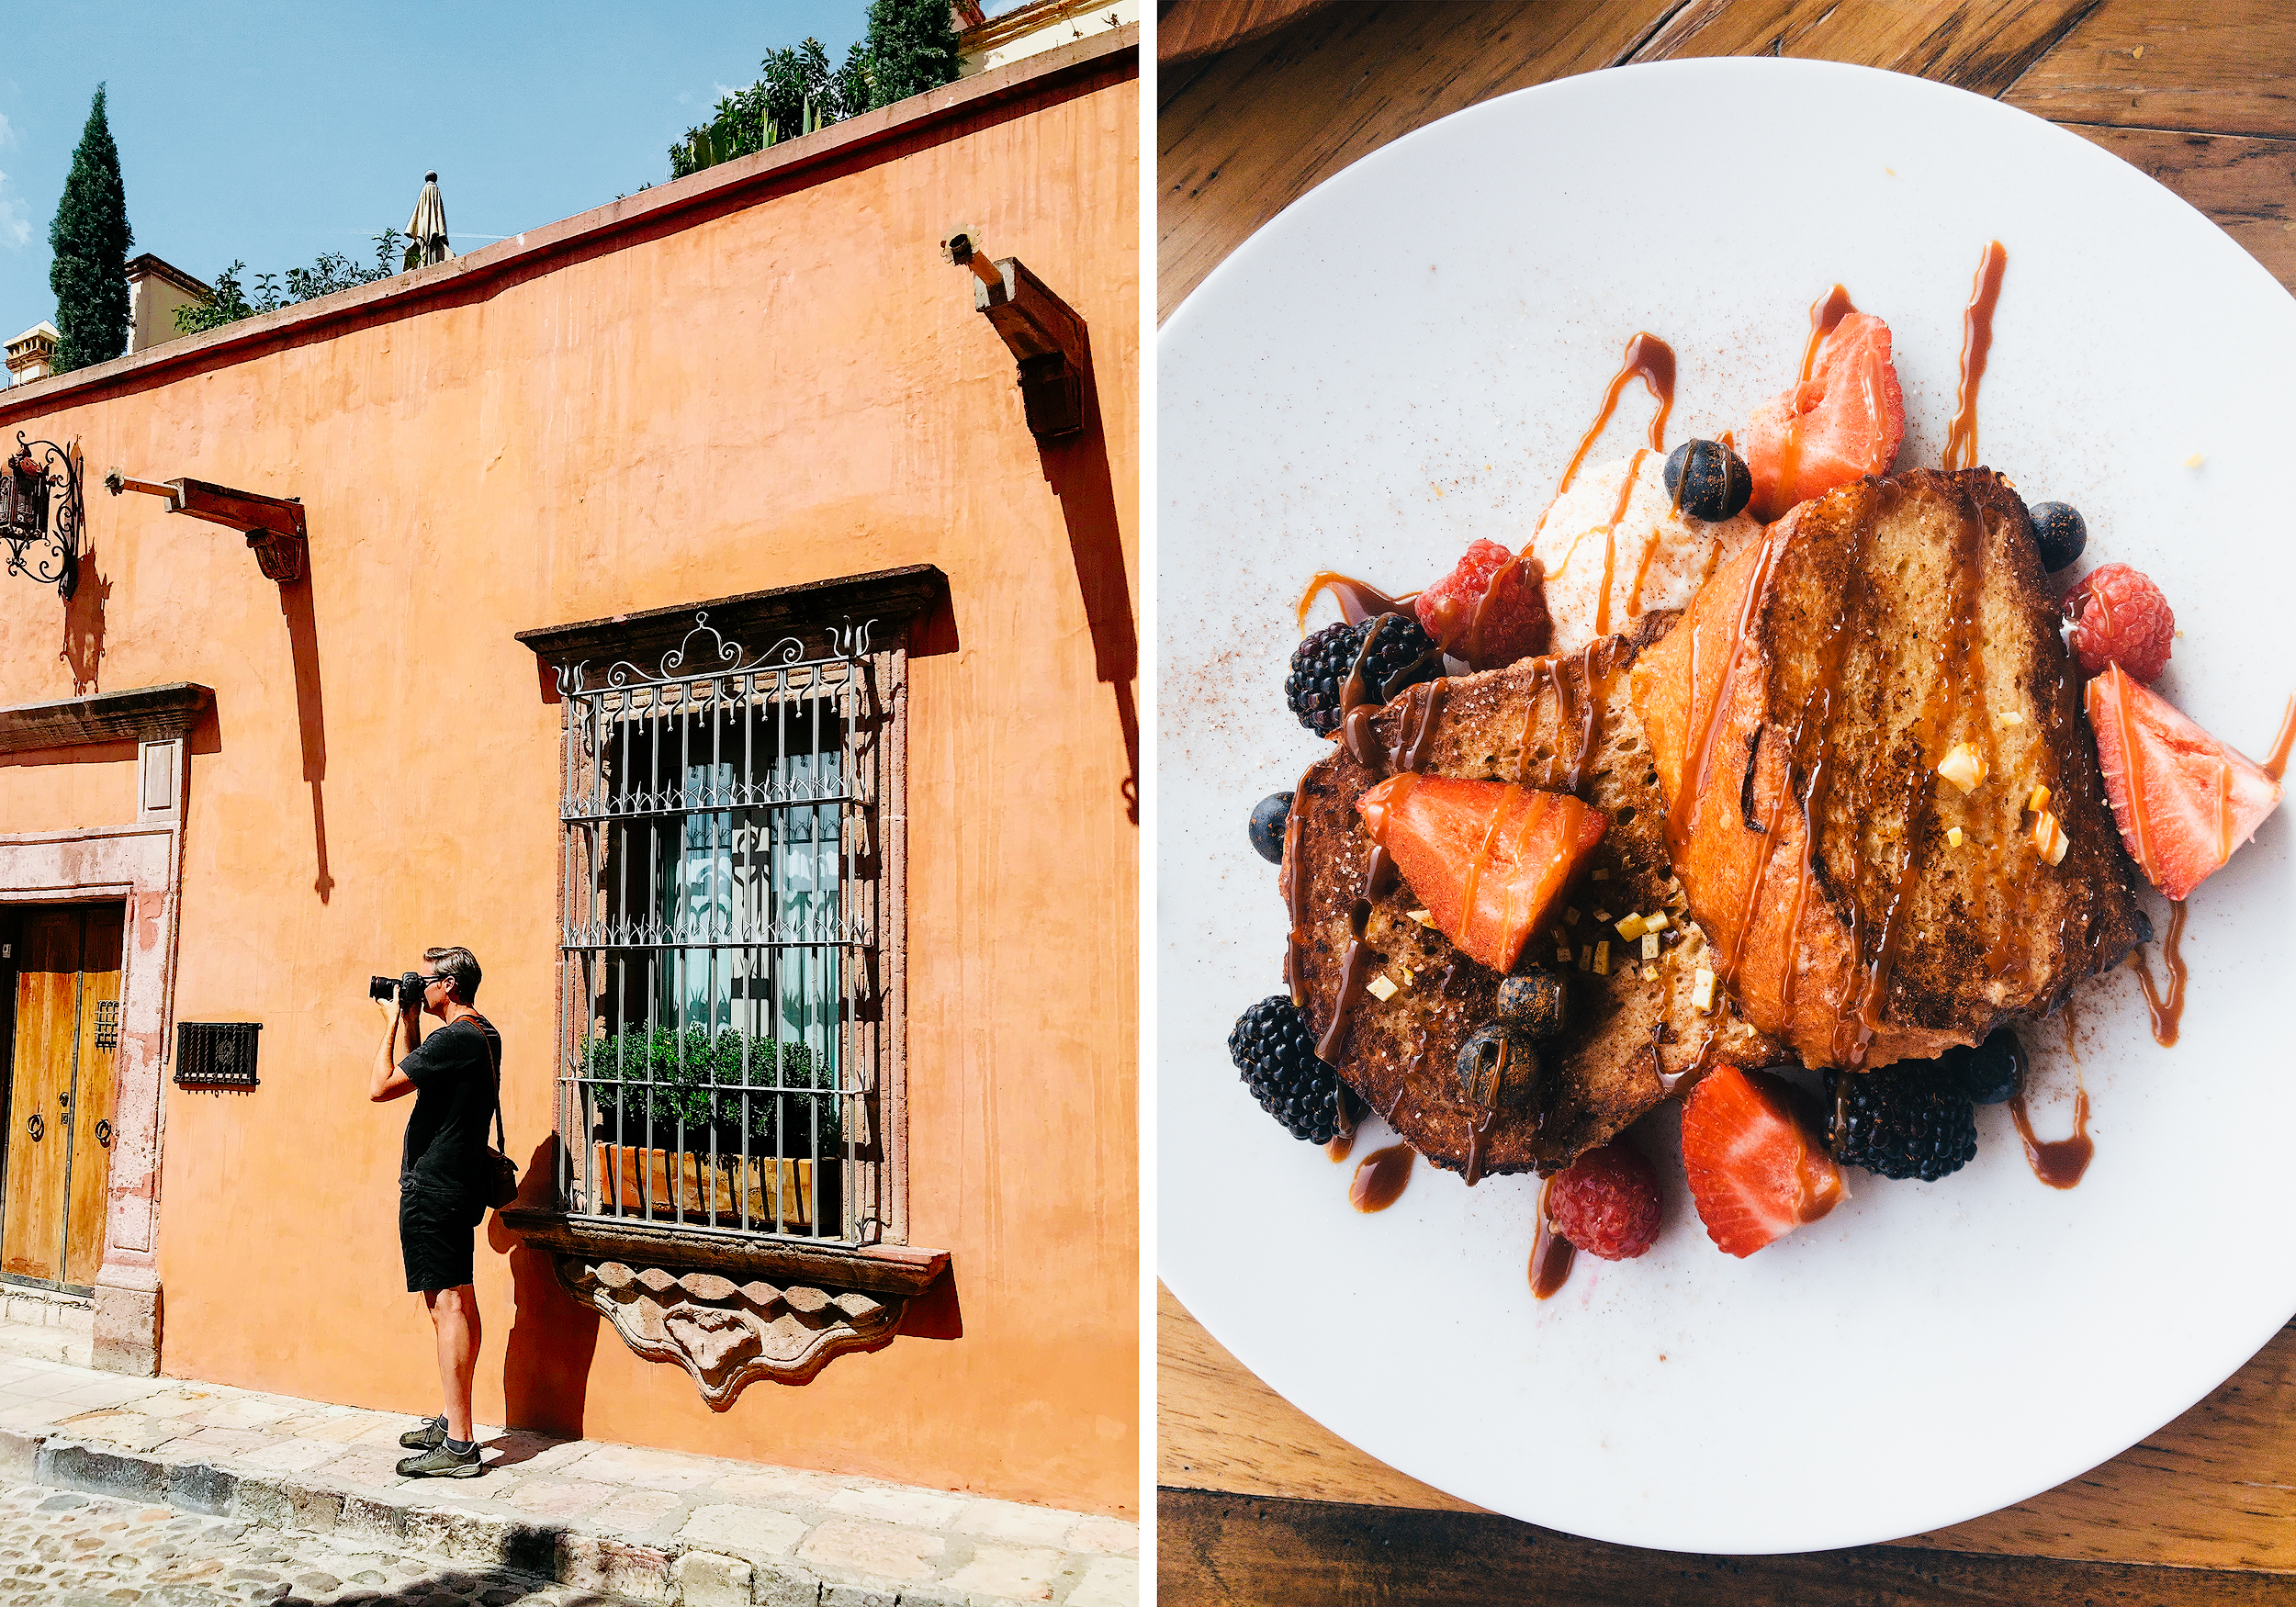 (Left) Me wandering the streets and taking photos, (Right) Incredible food throughout San Miguel, including this sumptuous breakfast